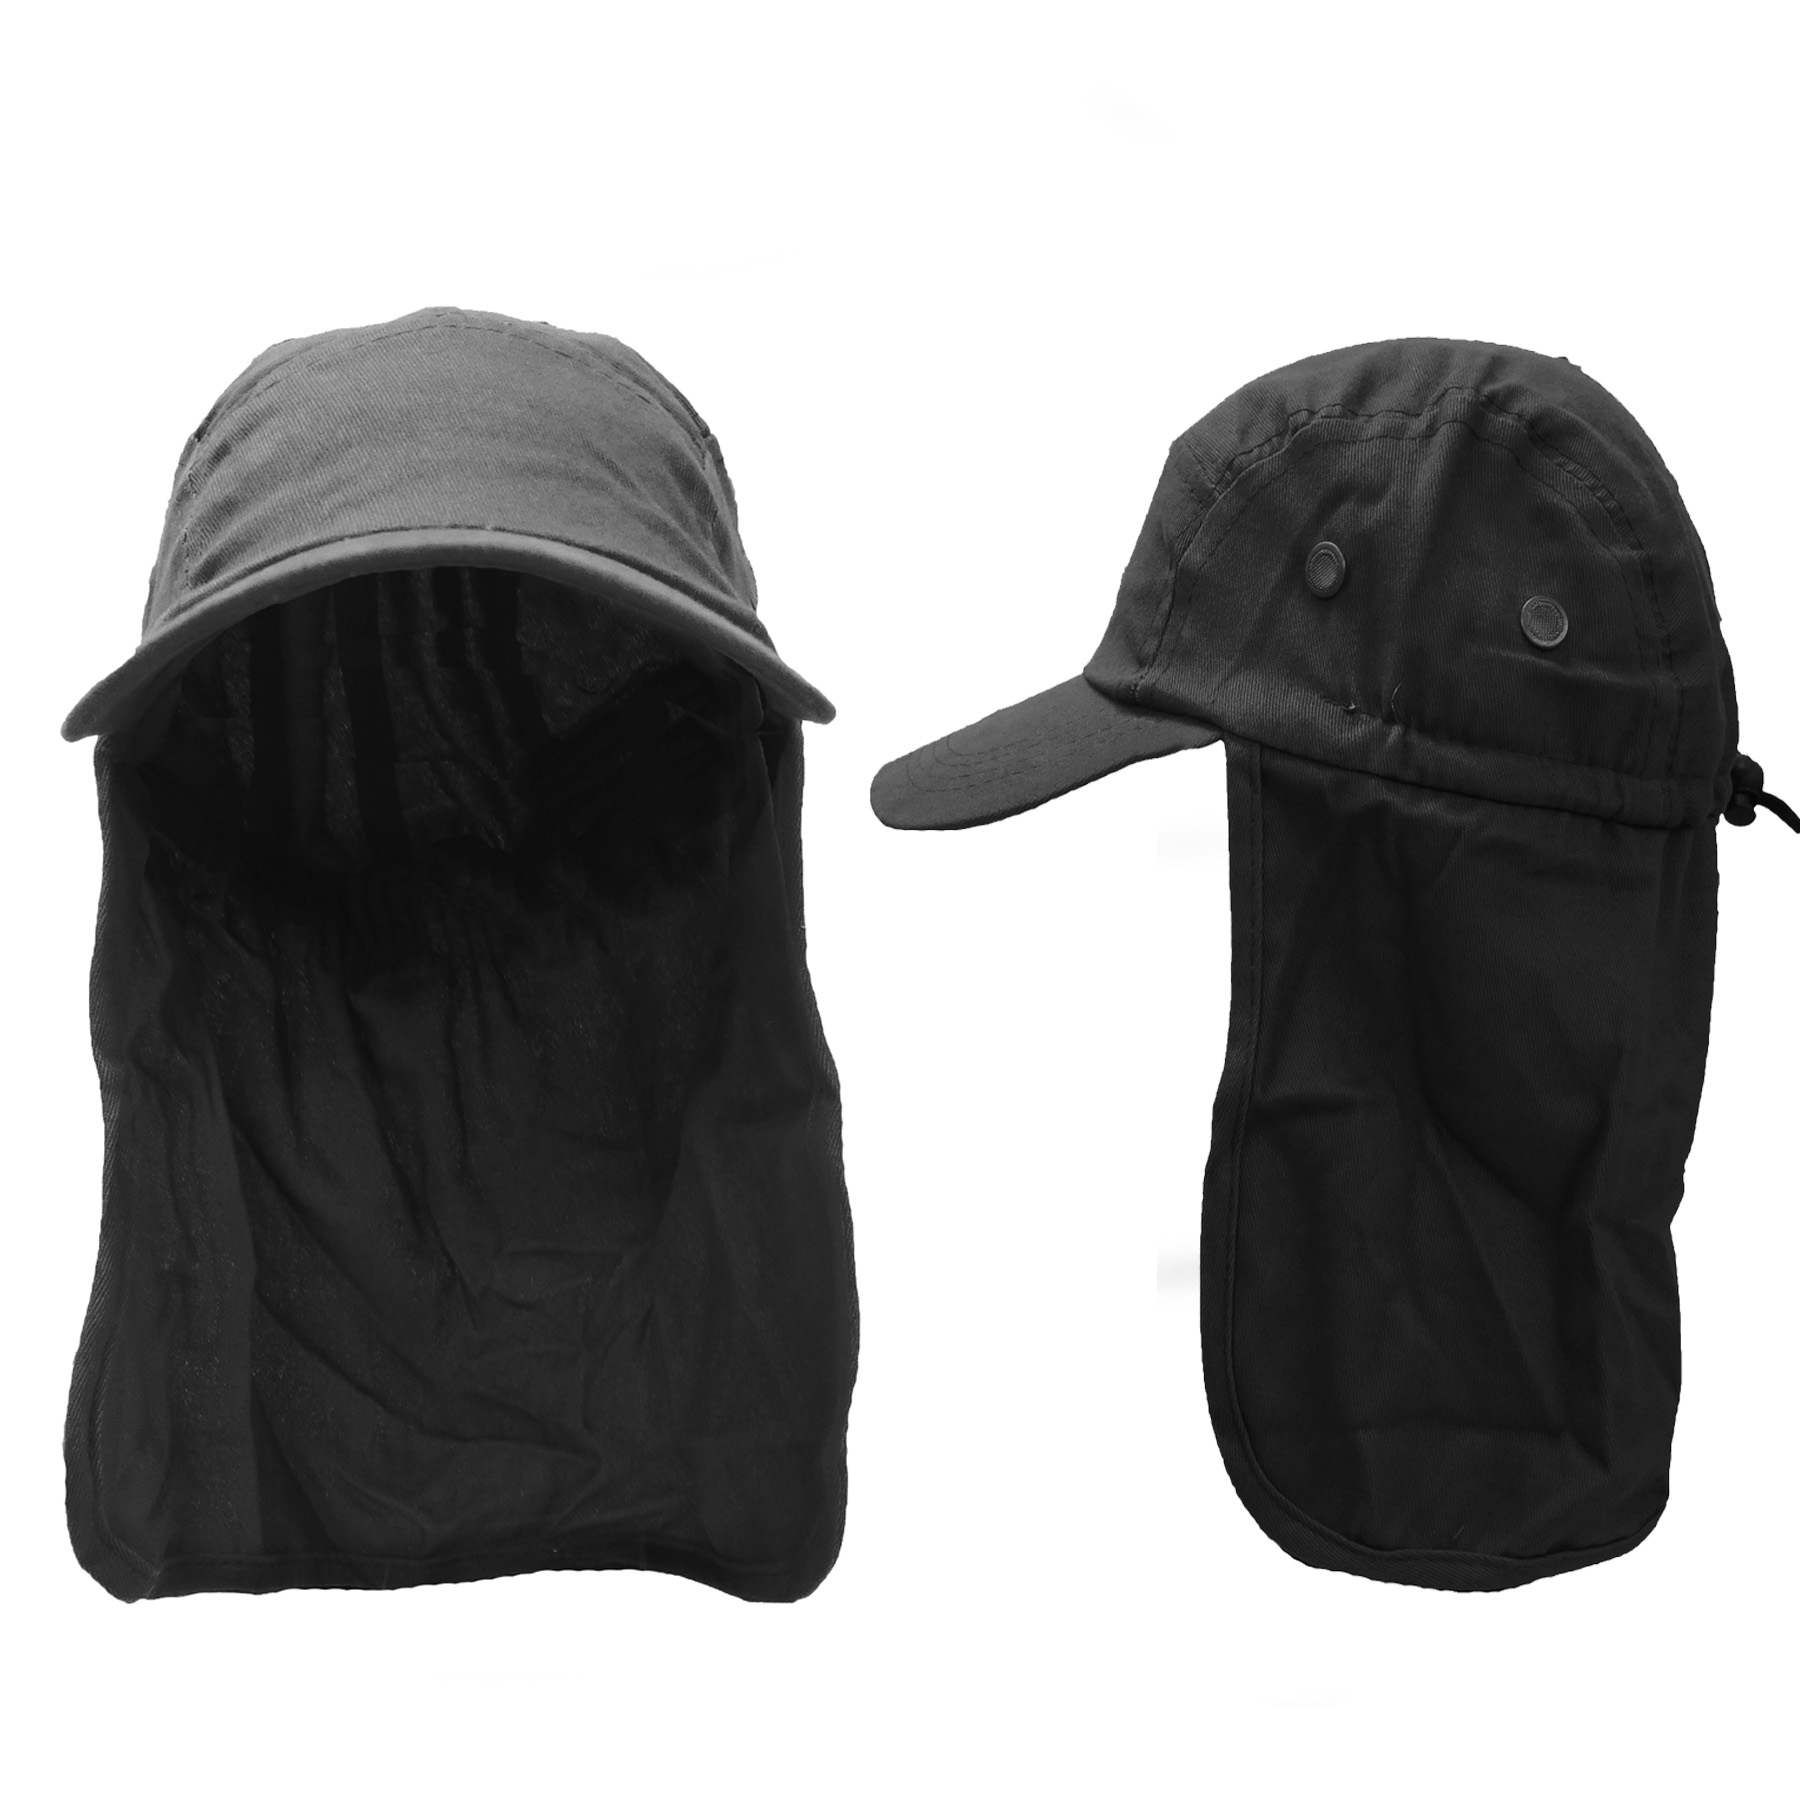 472eef2ec2a5d Details about Magg Fishing Cap with Ear and Neck Flap Cover